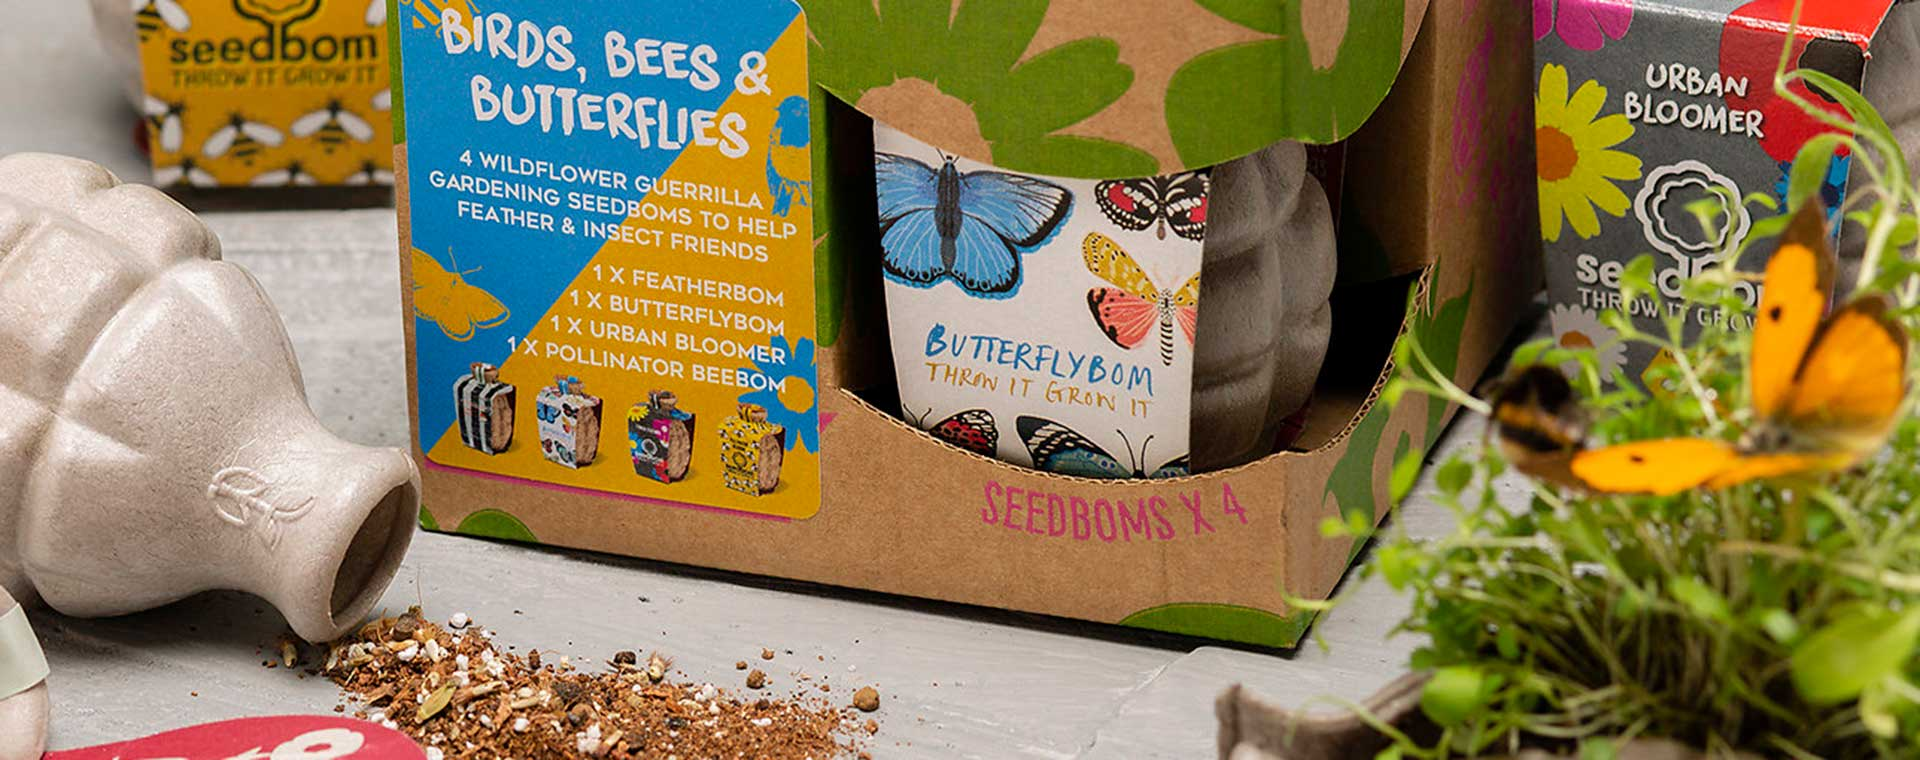 Birds, Bees & Butterflies Seedbom Birds, Bees & Butterflies Seedbom Gift Box